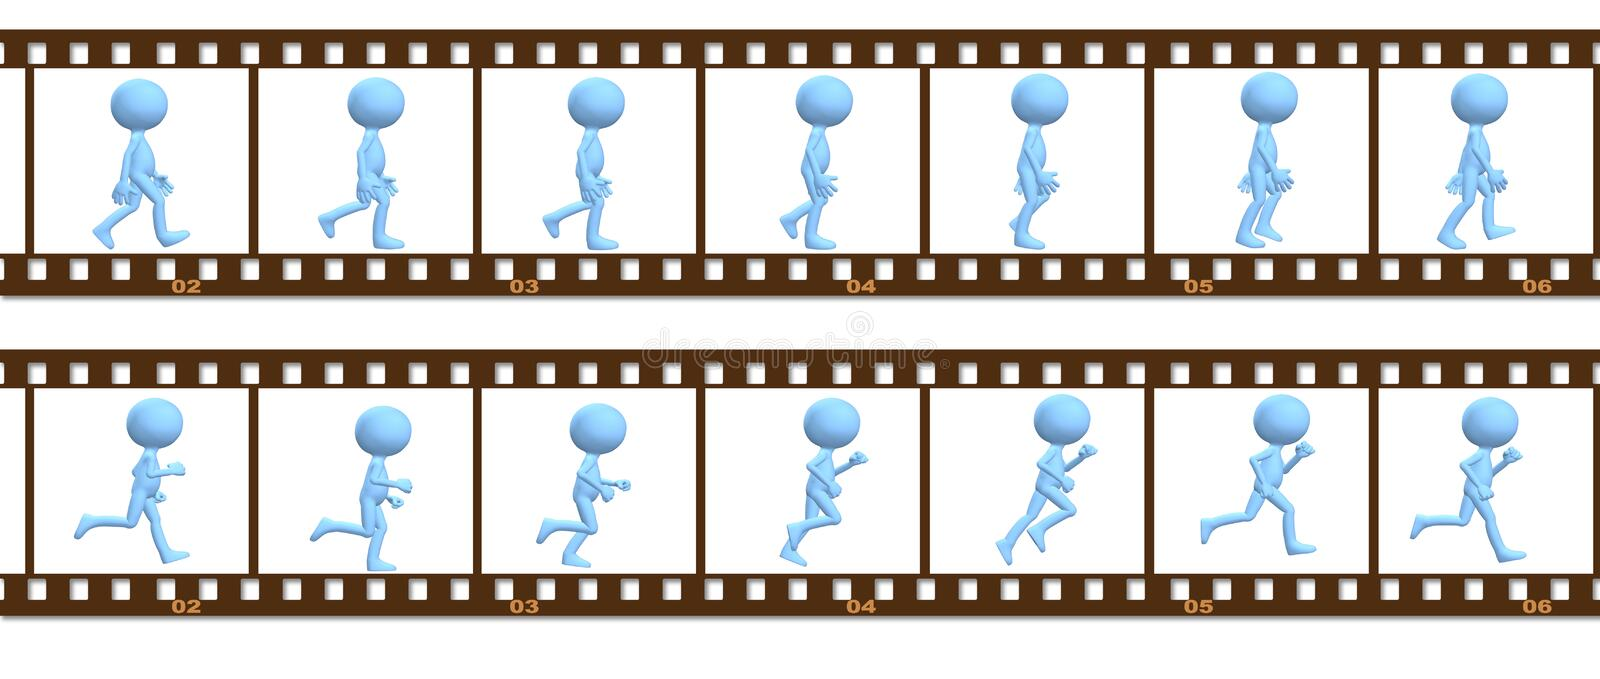 Animation symbol people walk run in cel frames royalty free illustration